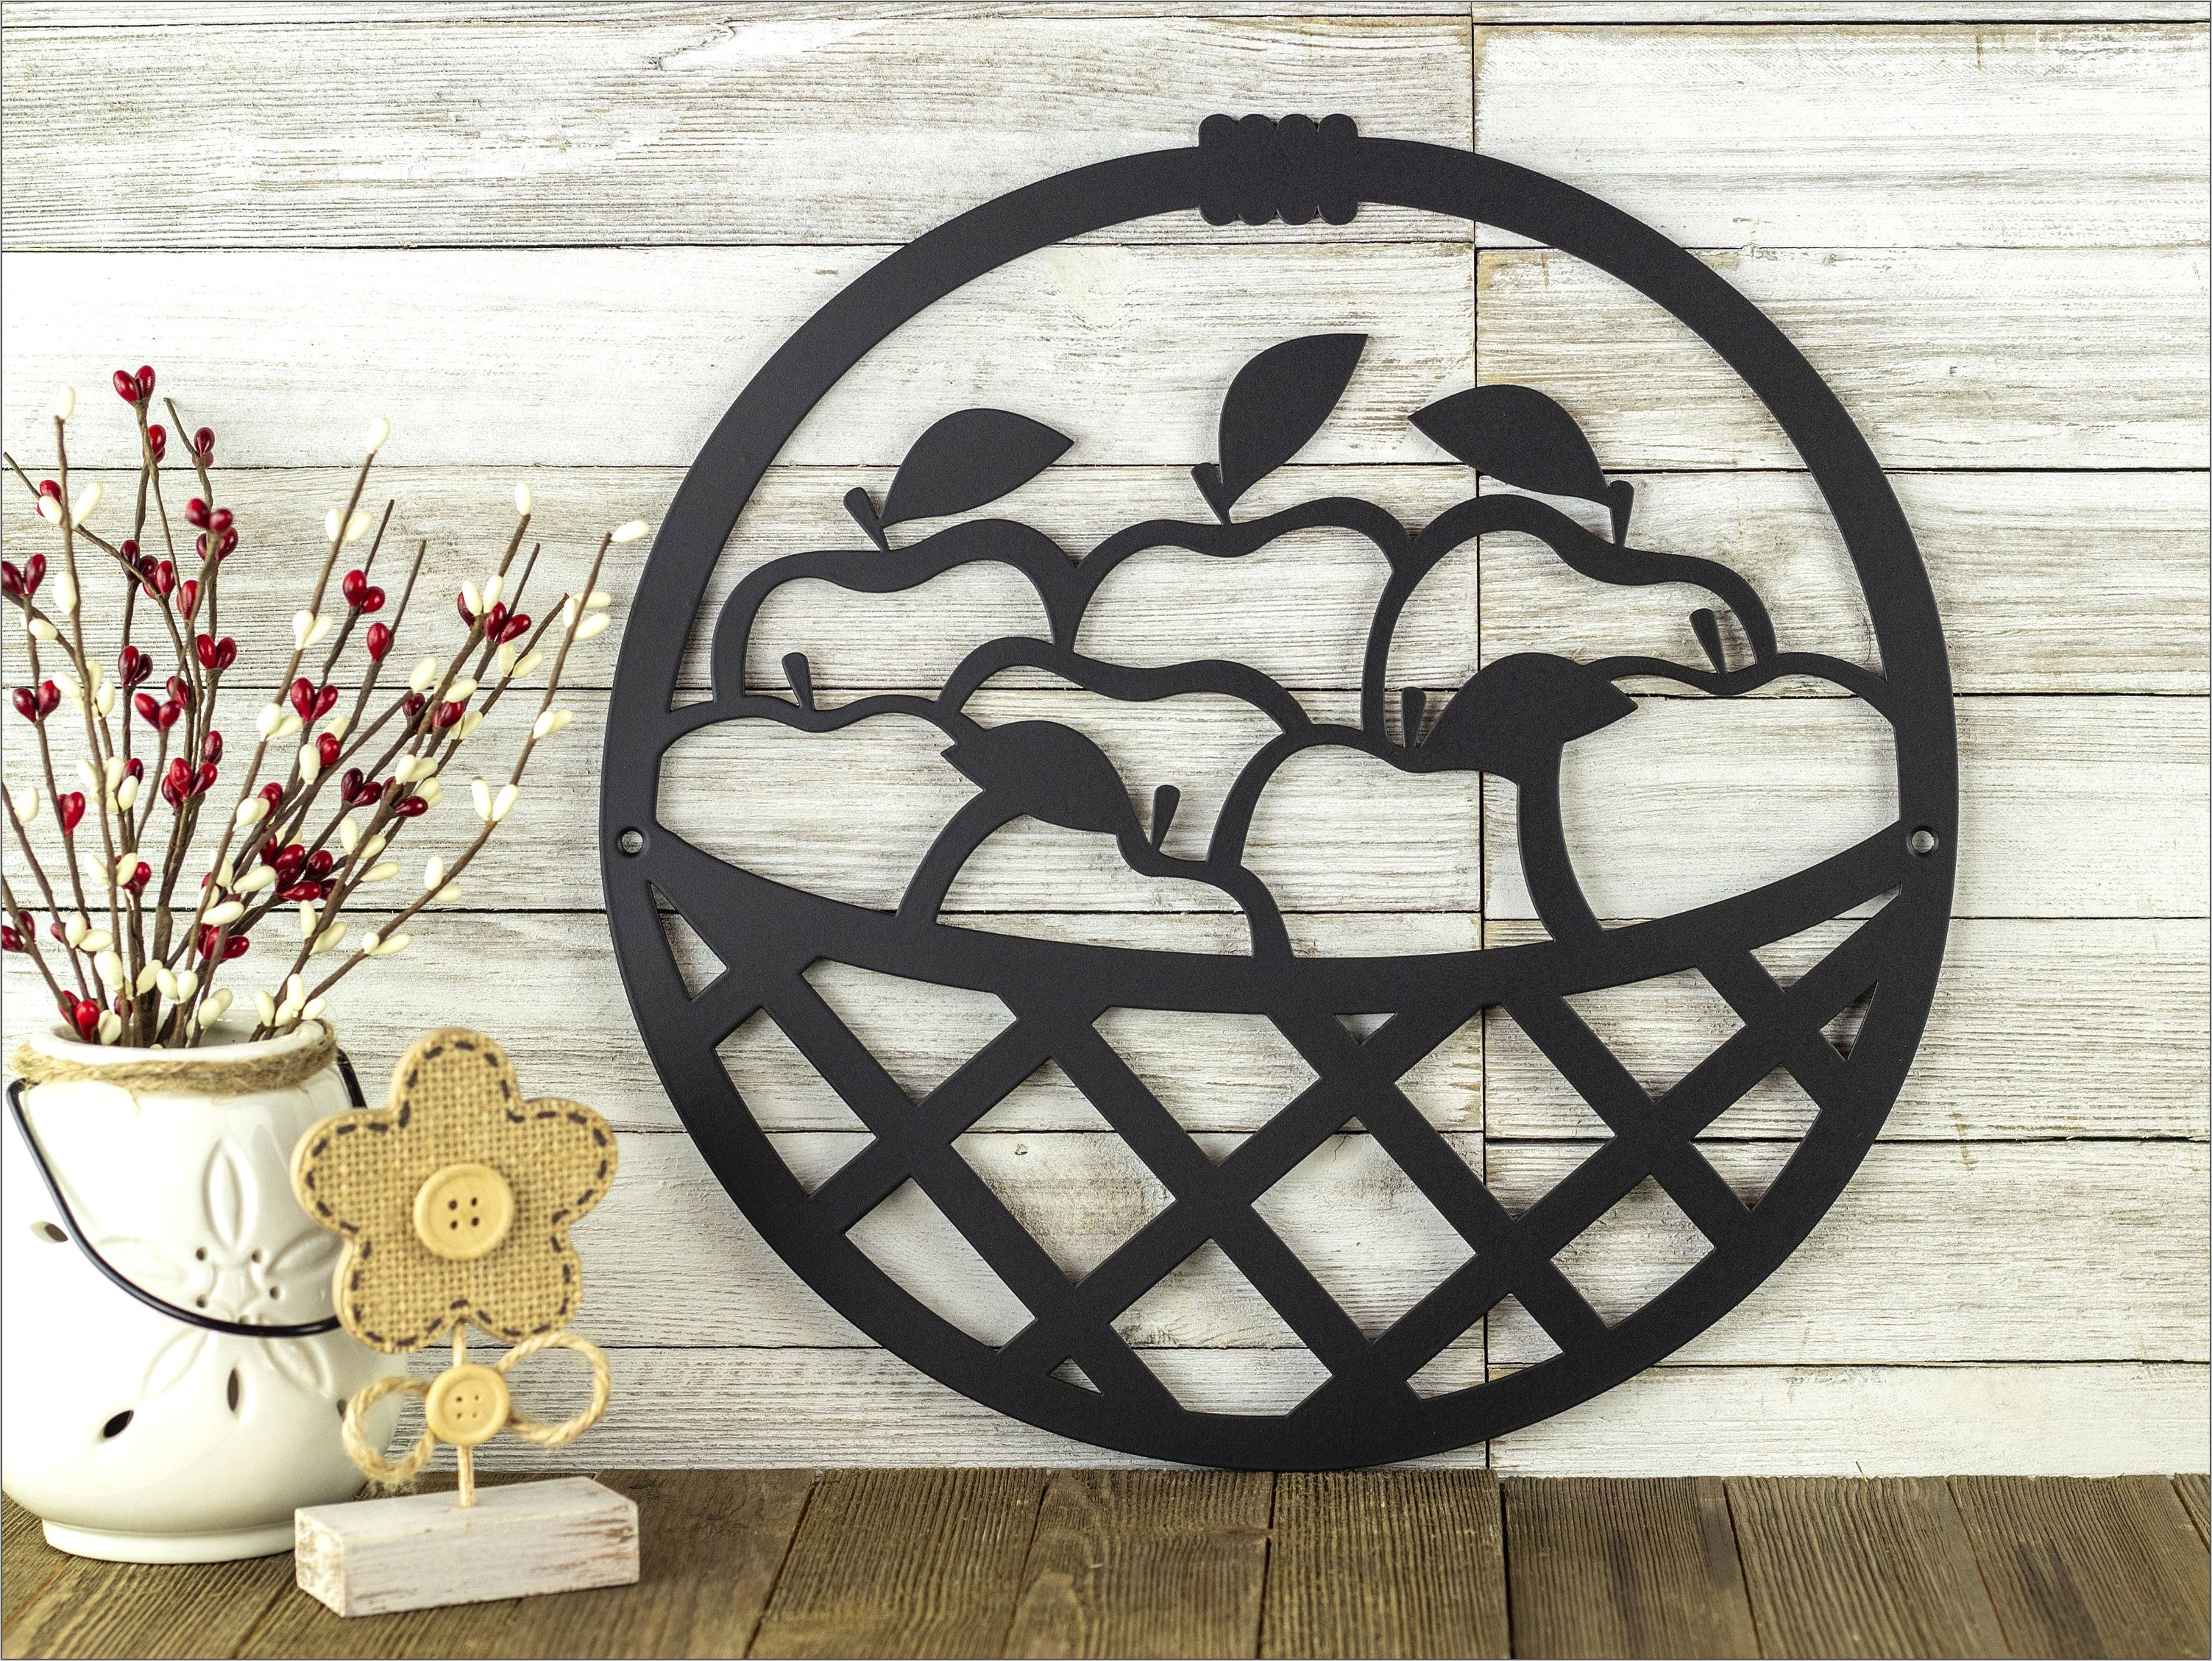 Rustic Kitchen Wall Decor Gift